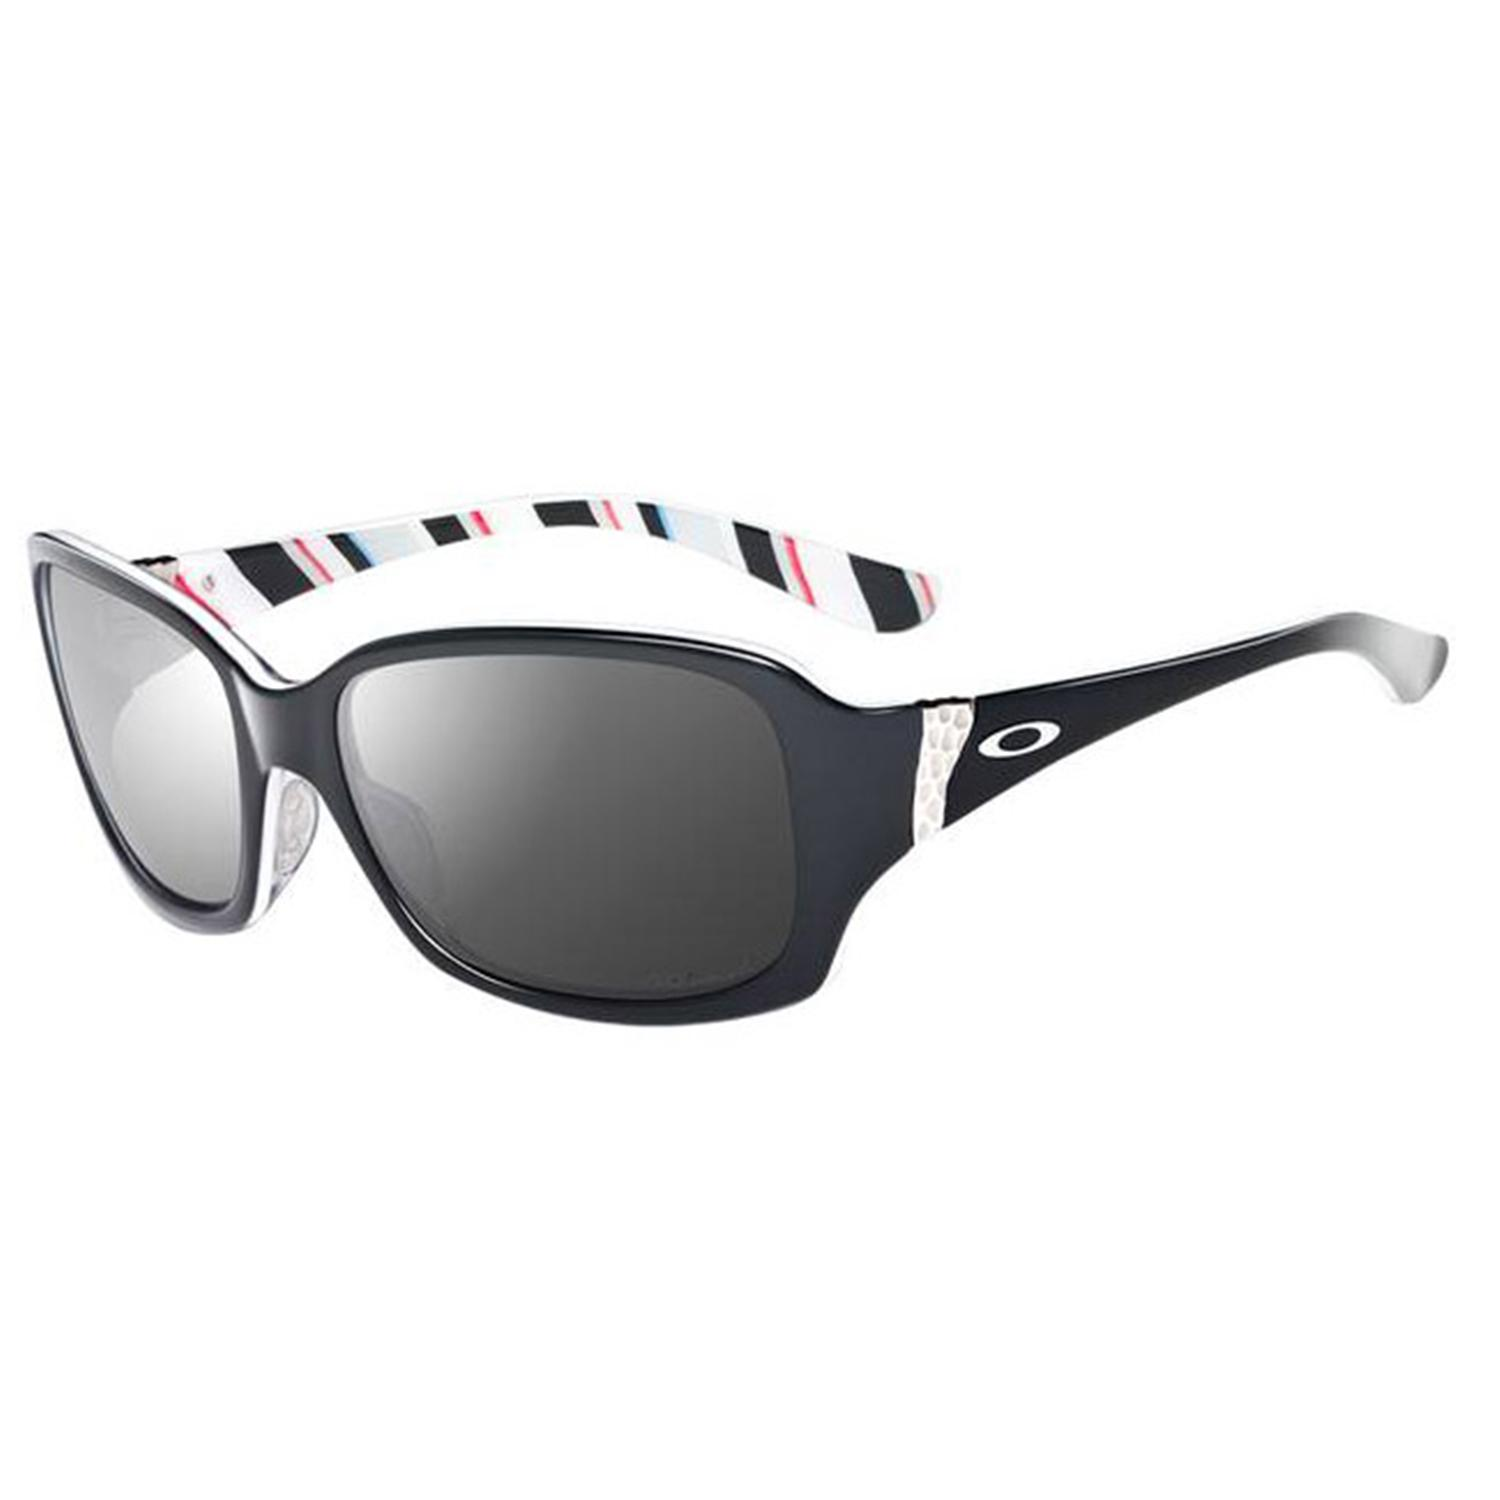 womens oakley sunglasses cheap  Oakley Sunglasses For Women Polarized mobiledeals4contractphones.co.uk